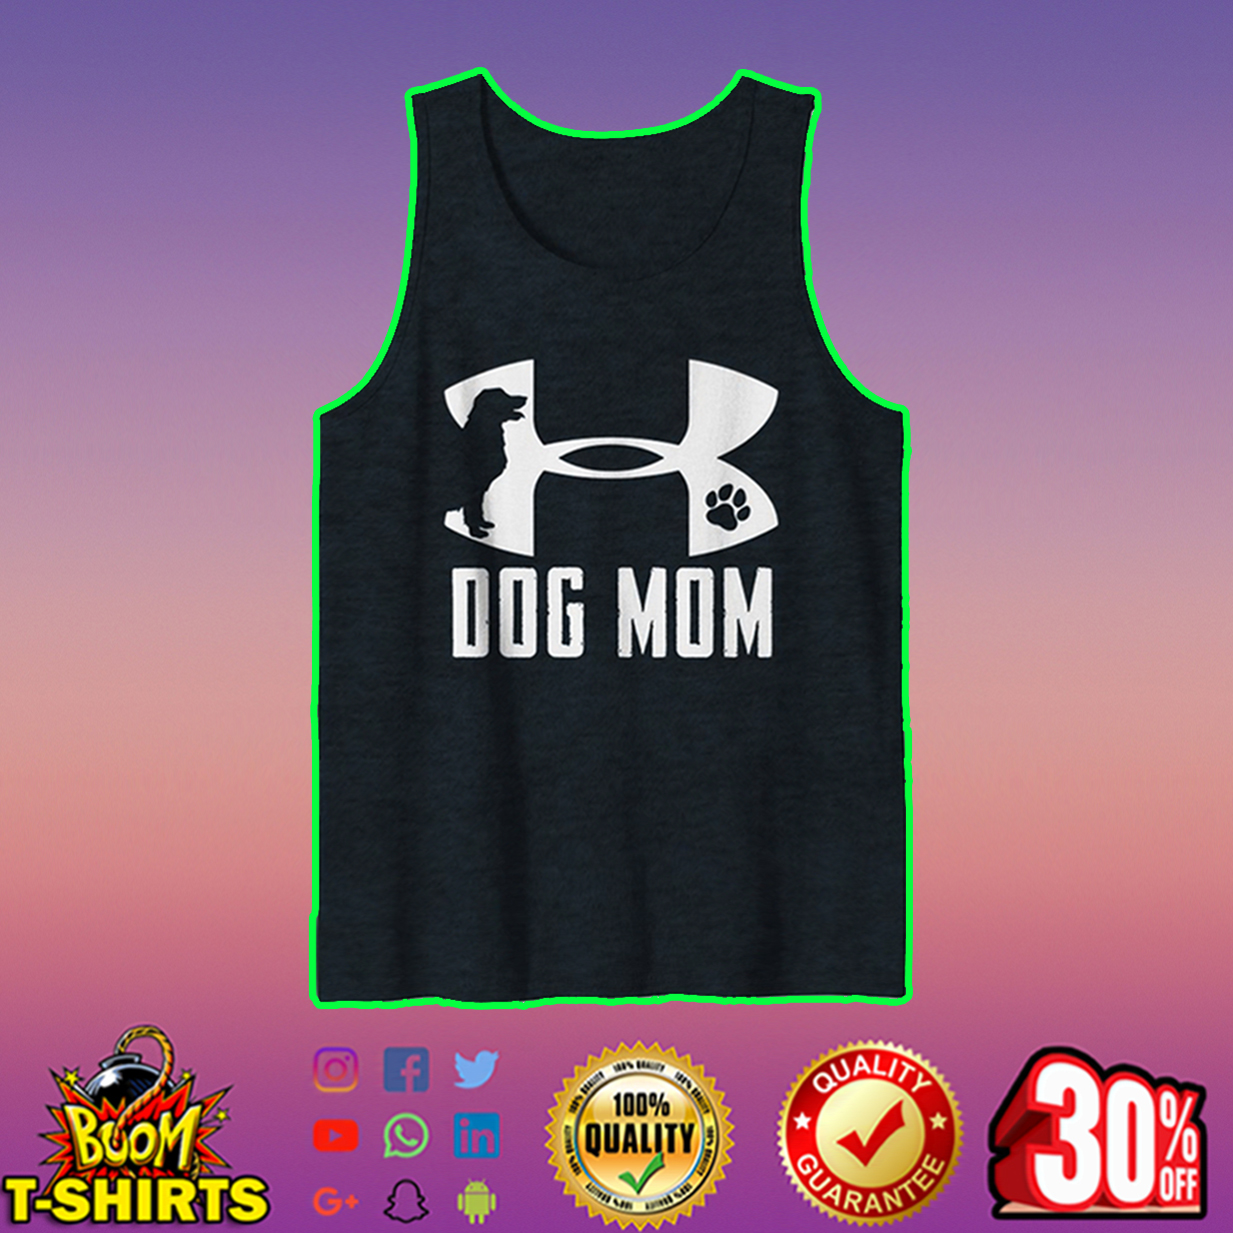 Under Armour Dog Mom tank top